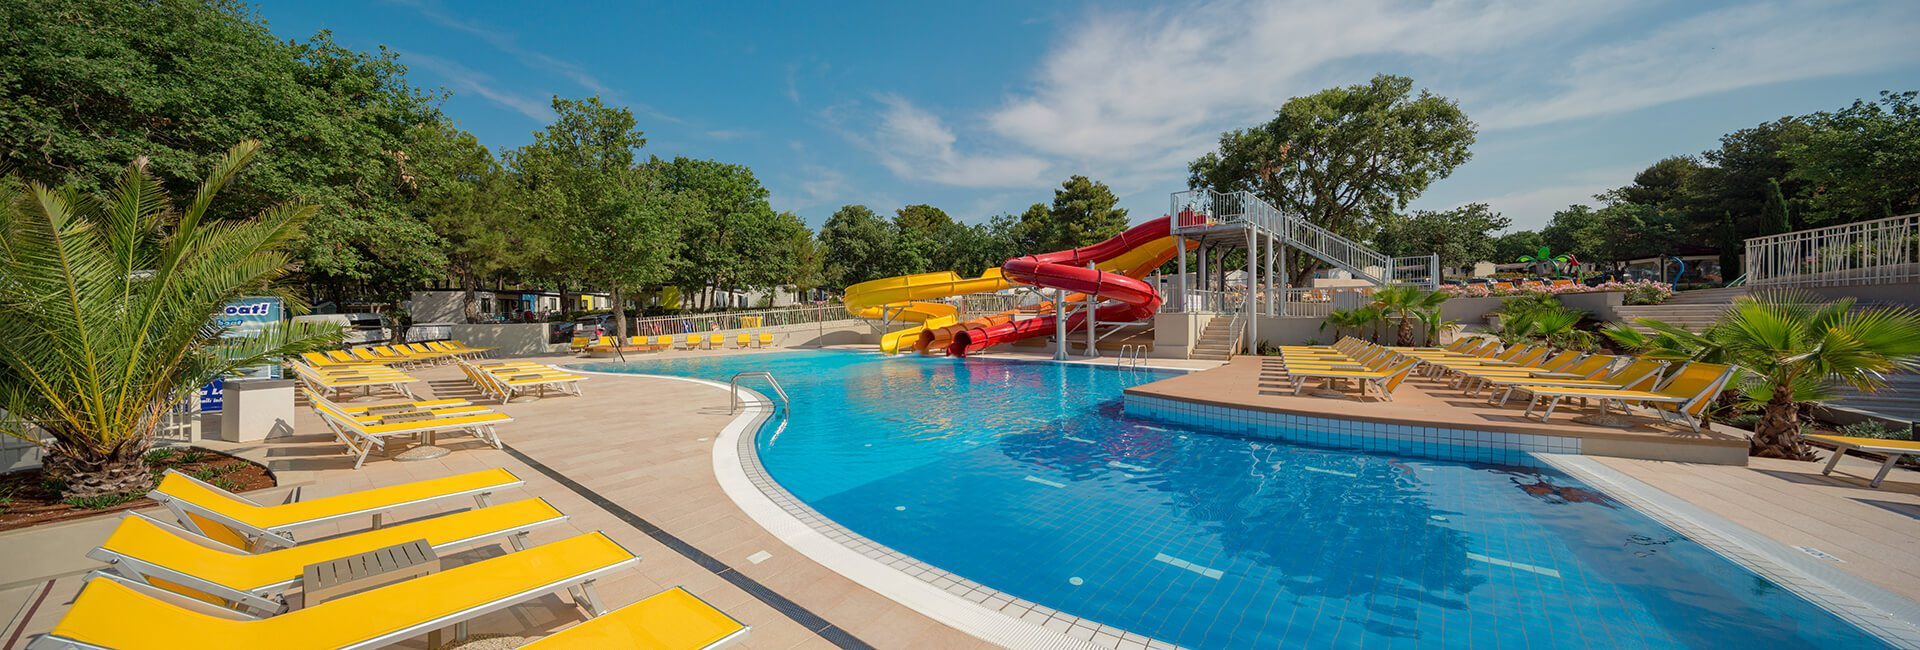 Camping resort lanterna pool